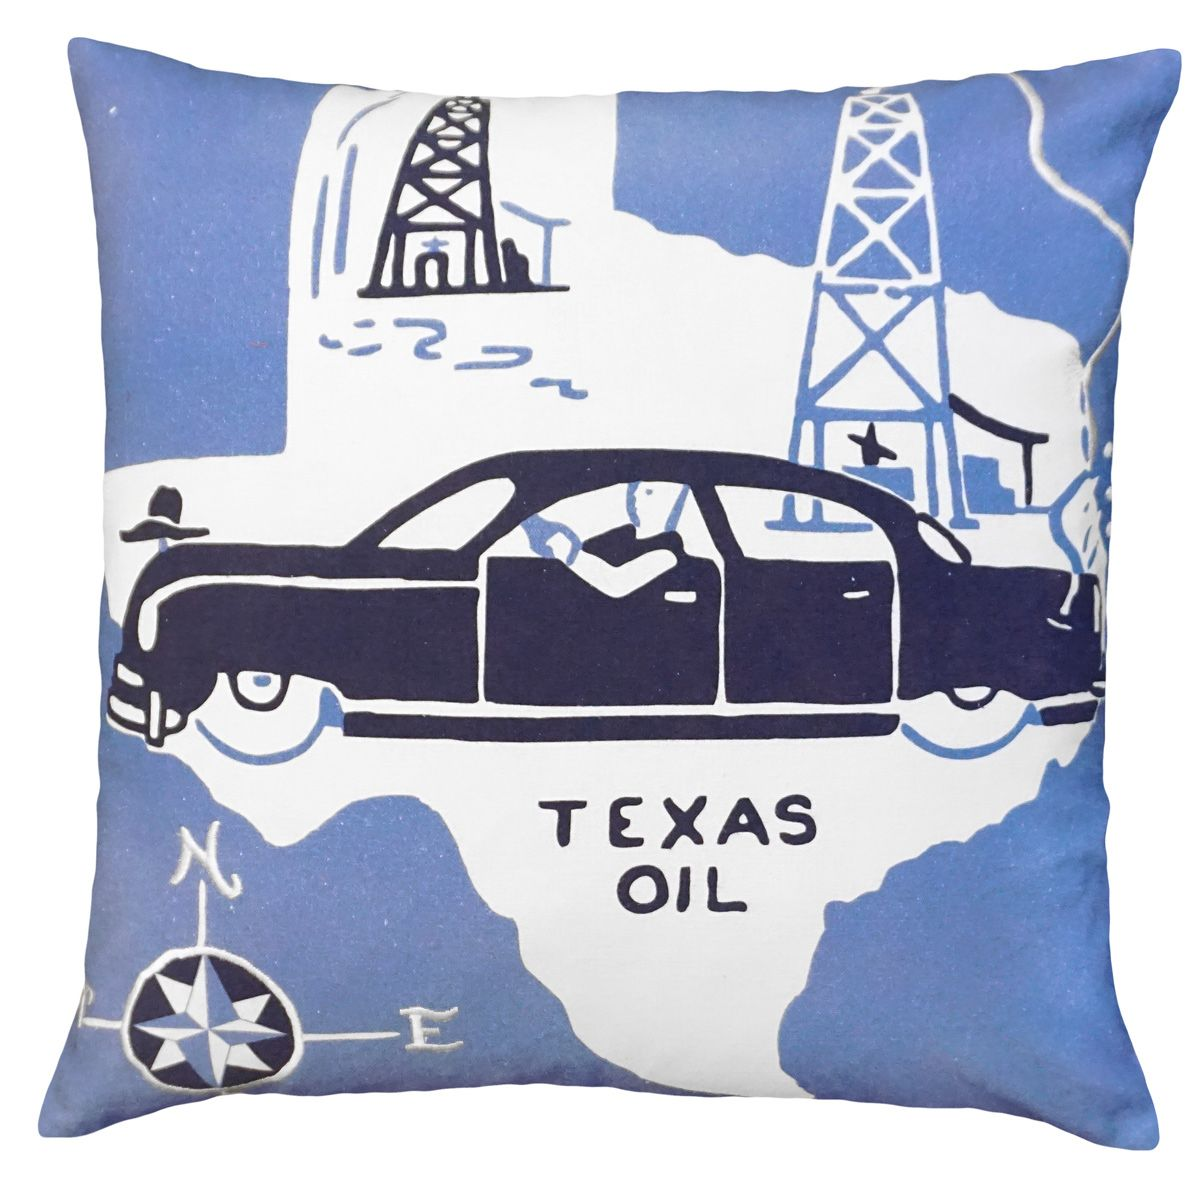 Texas Oil Embroidered Pillow